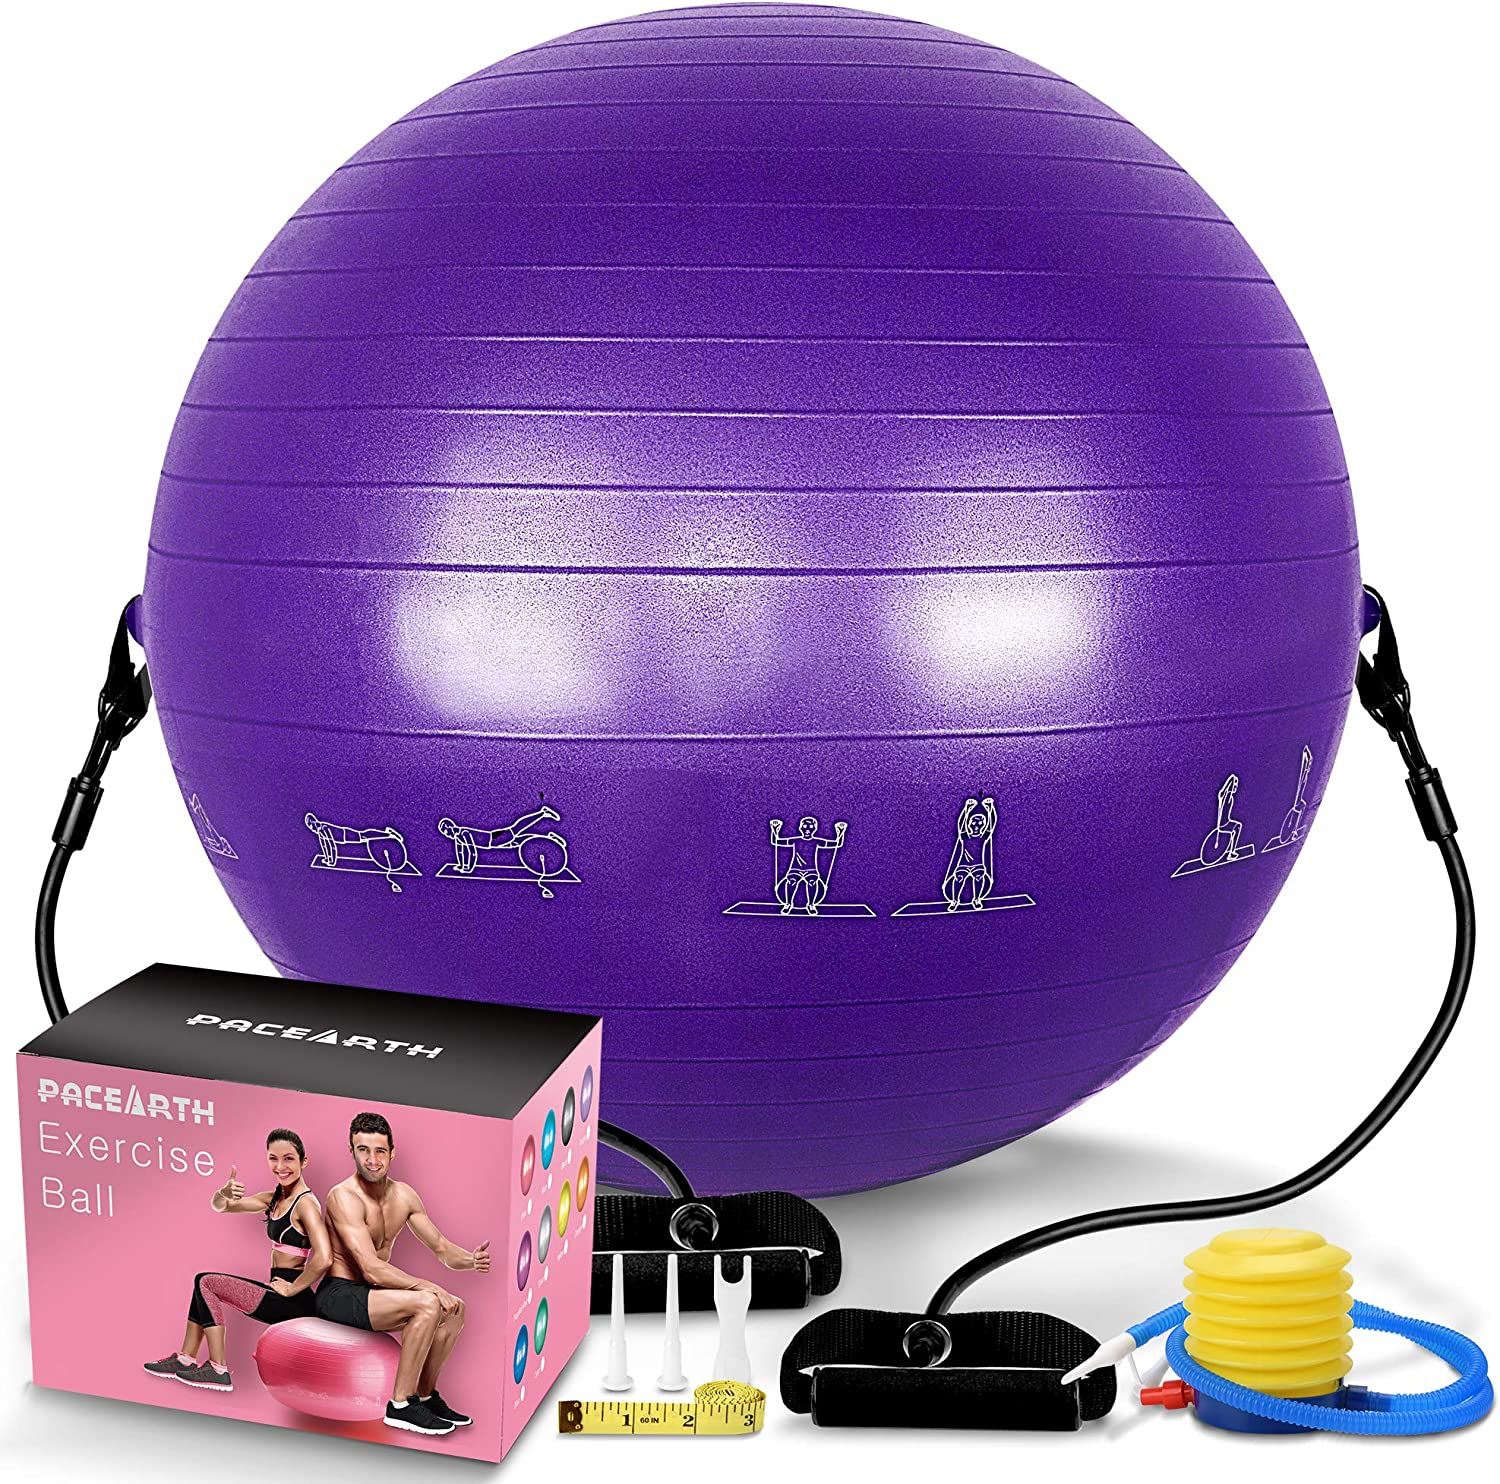 PACEARTH Exercise Ball for Home Gym Office Thick Yoga Ball Chair with Resistance Bands and Quick Pump Anti-Burst Heavy Duty Stability Fitness Balance Birthing Workout Ball for Pilates